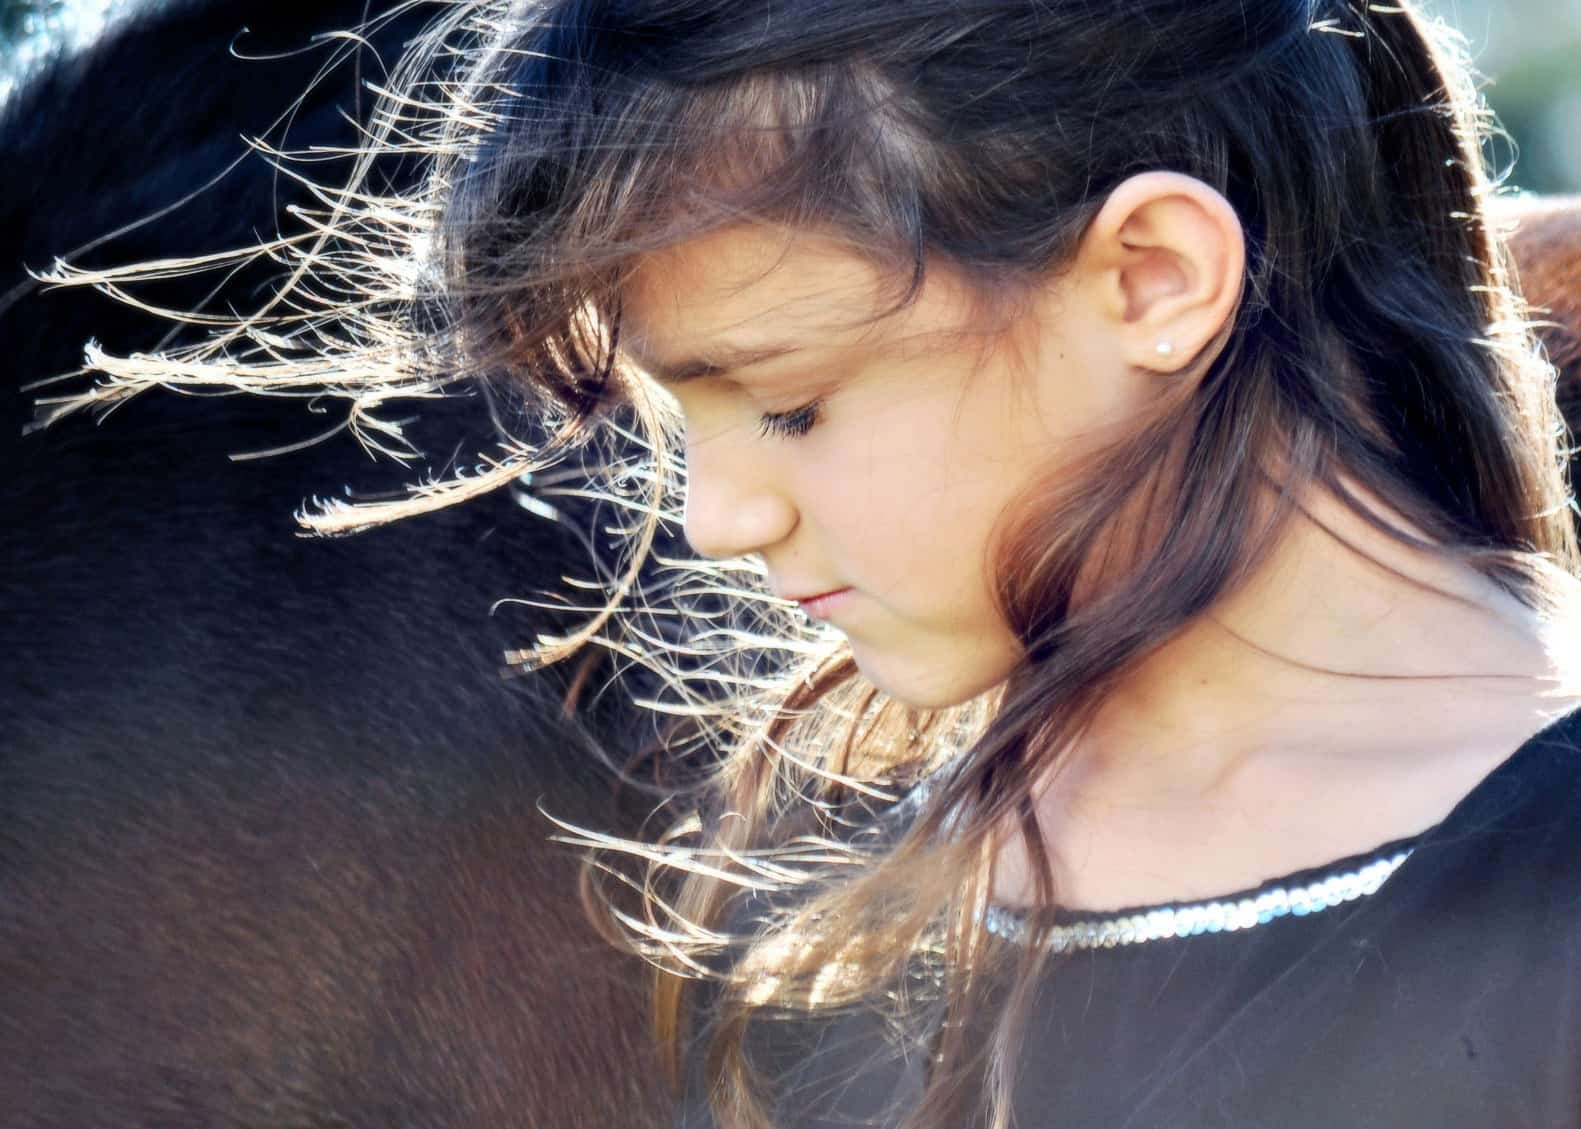 Color photo of young girl with her hair flowing in the sunlight